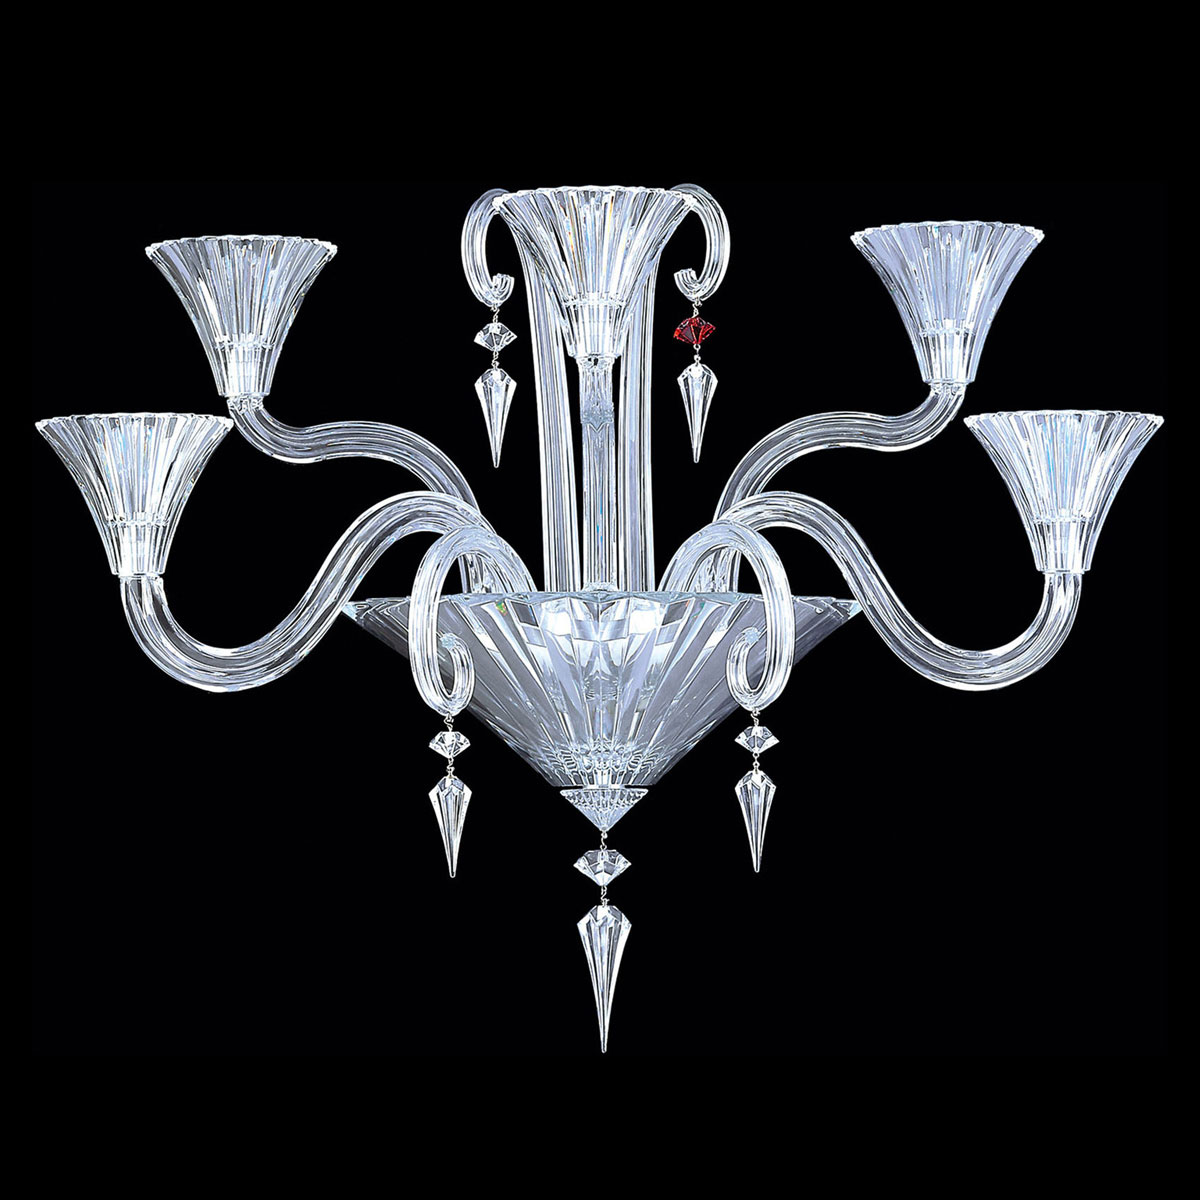 Baccarat Crystal, Mille Nuits 5 Light Wall Crystal Sconce